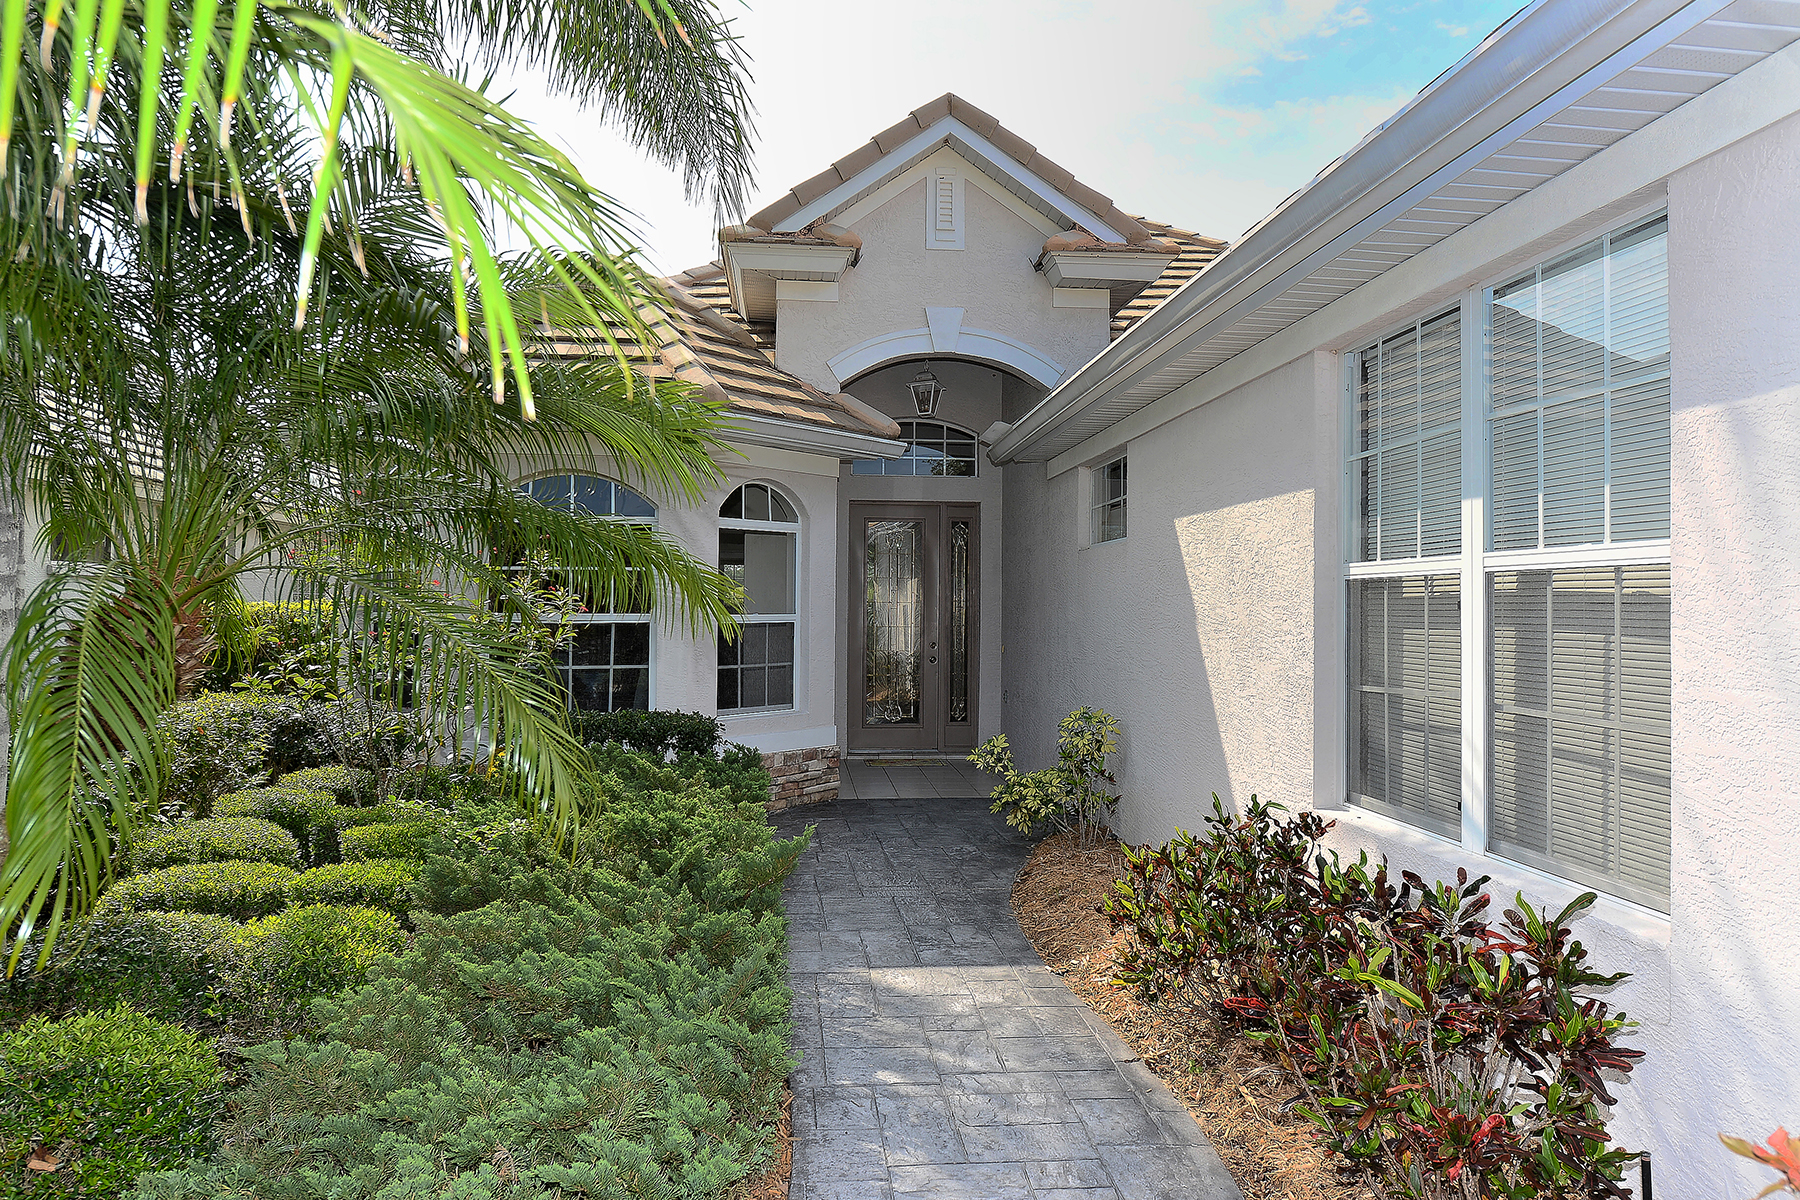 Single Family Home for Sale at LAKEWOOD RANCH COUNTRY CLUB VILLAGE 7819 Heritage Classic Ct Lakewood Ranch, Florida, 34202 United States